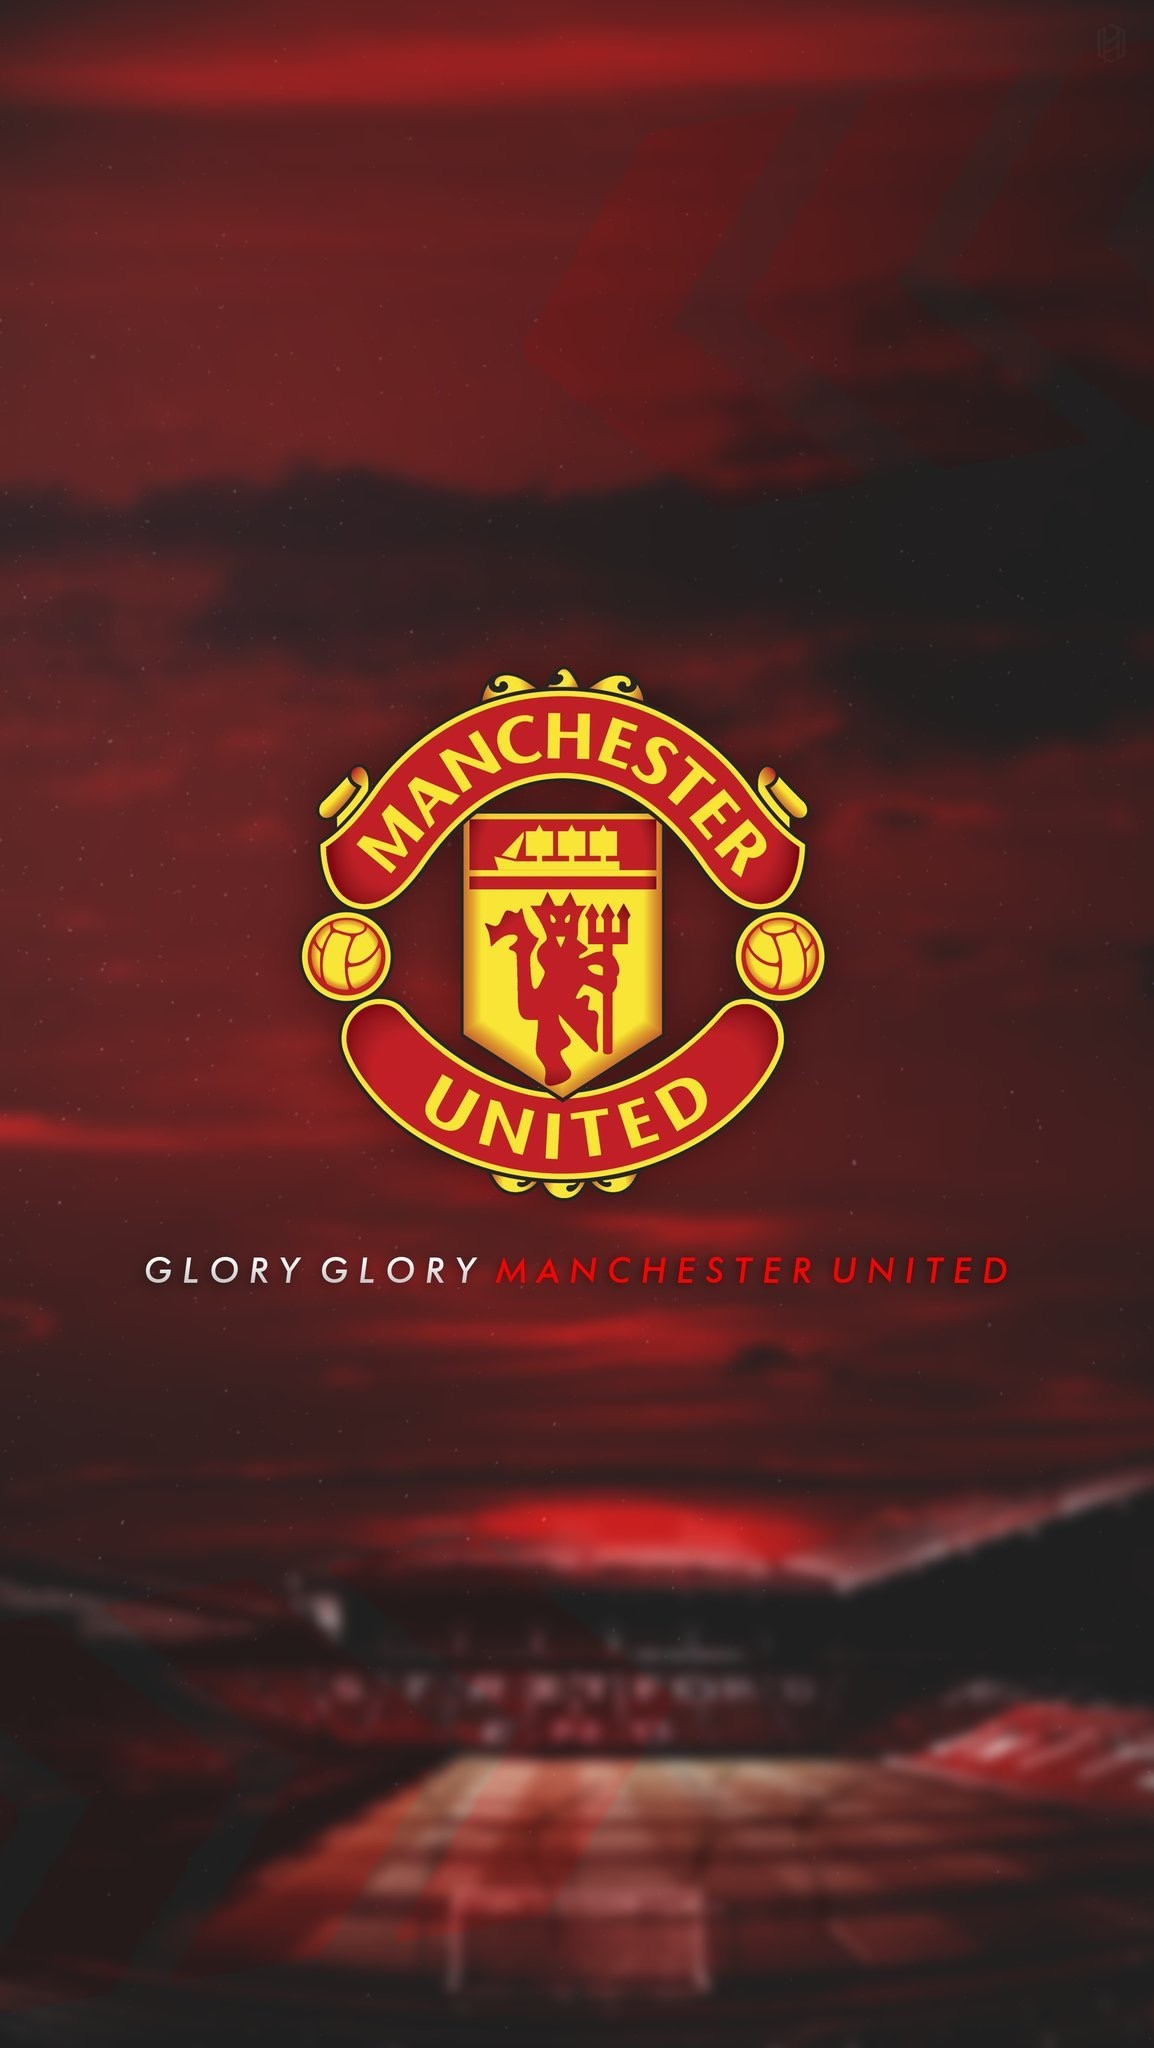 Manchester United Wallpaper 2018 (71+ images)